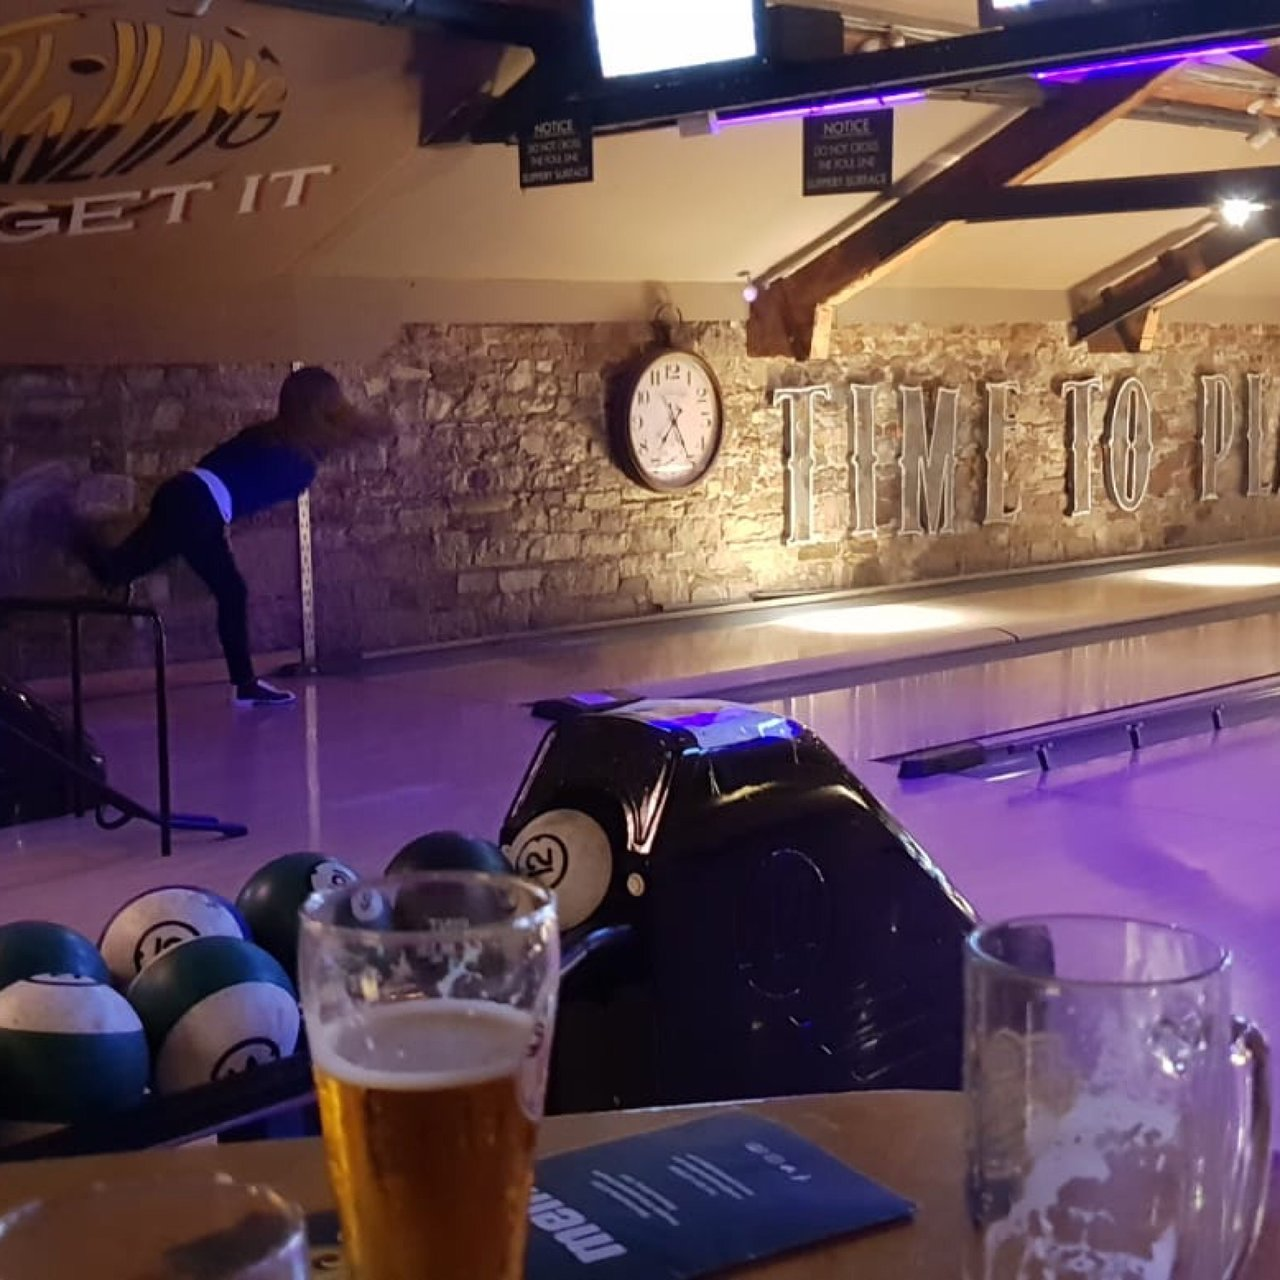 Find a group in Kinsale - Meetup